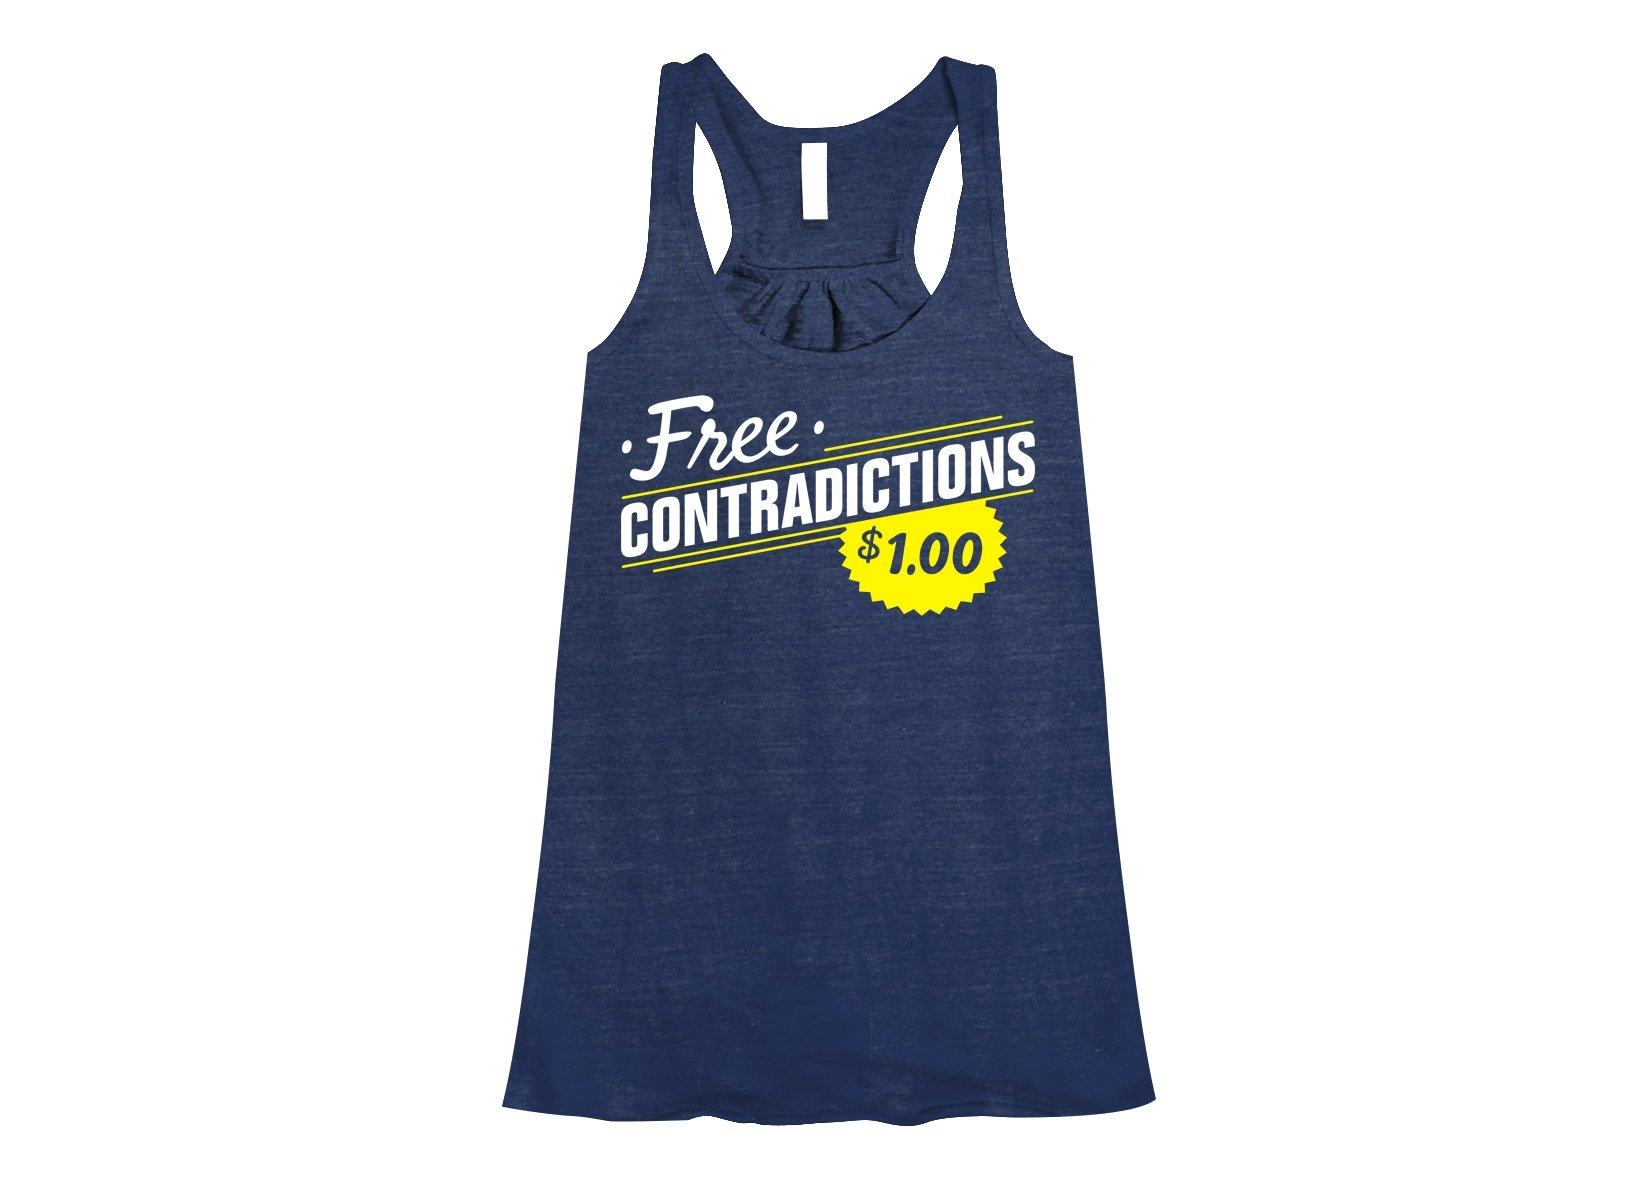 Free Contradictions on Womens Tanks T-Shirt